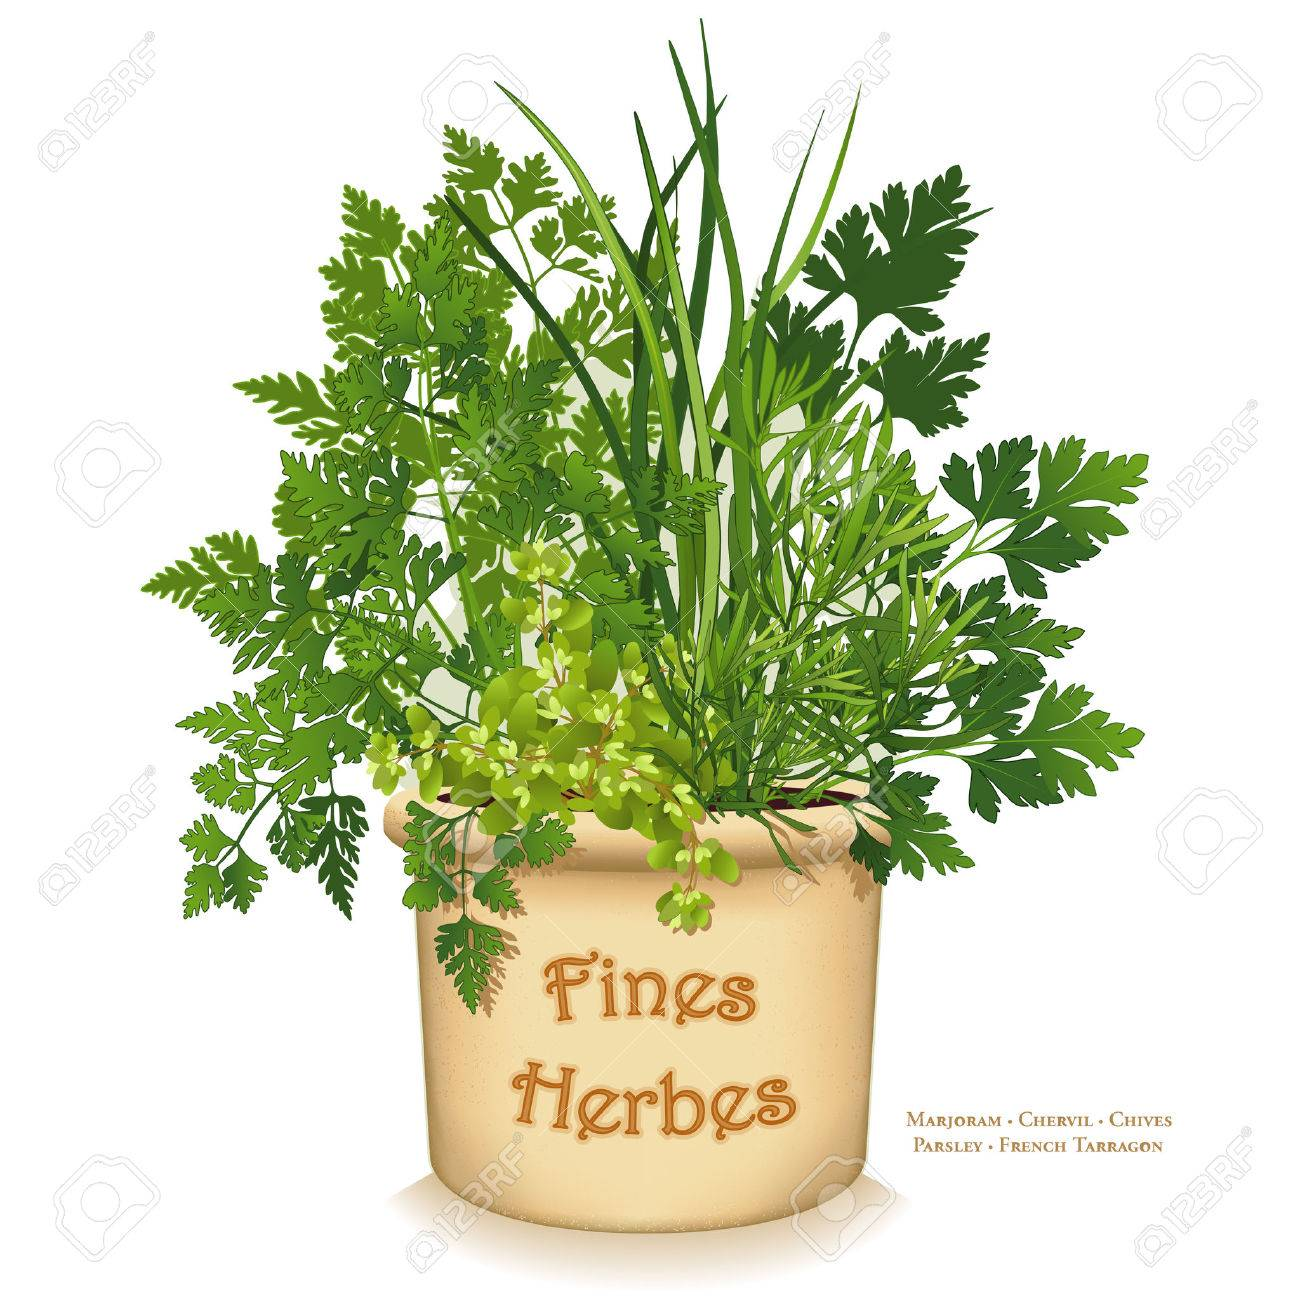 Planter For Herbs Fines Herbes Garden Planter